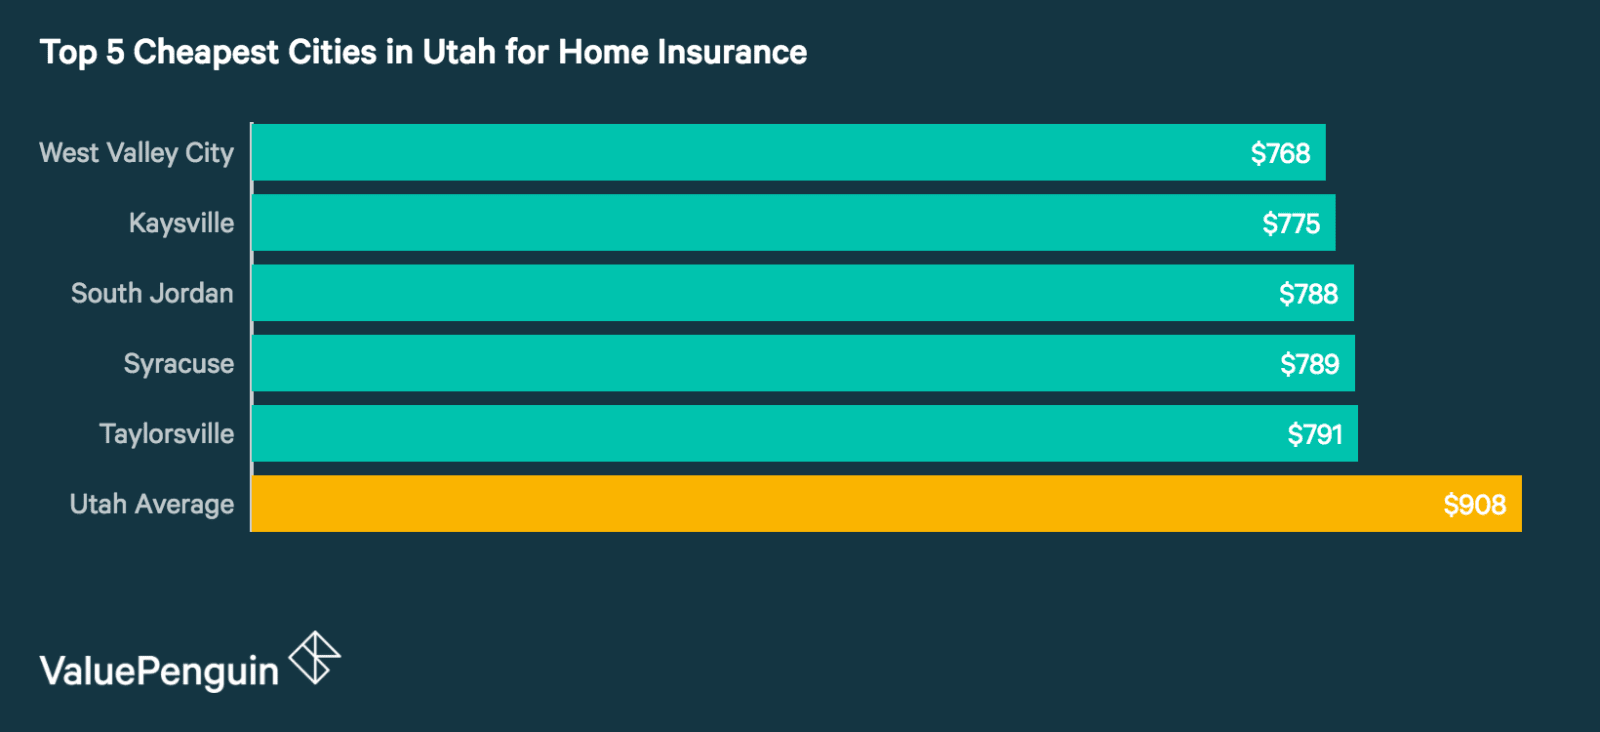 Top 5 Cheapest Cities in Utah for Homeowners Insurance